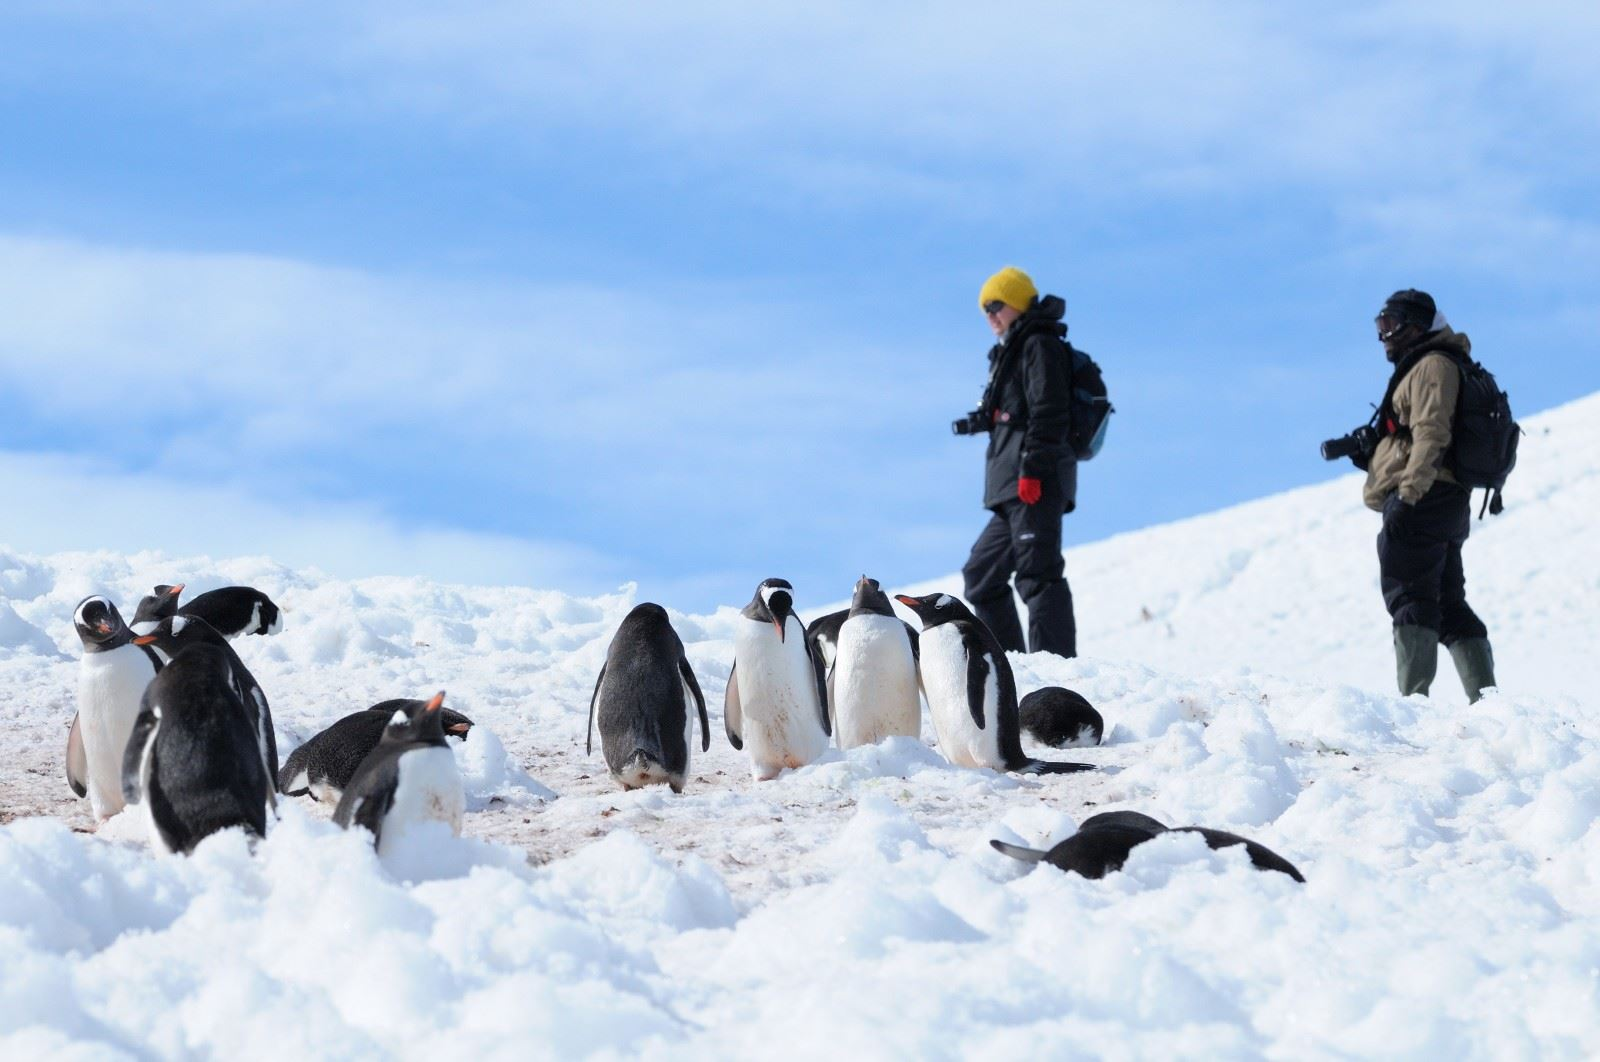 Antarctic Peninsula & South Shetlands Islands Cruise